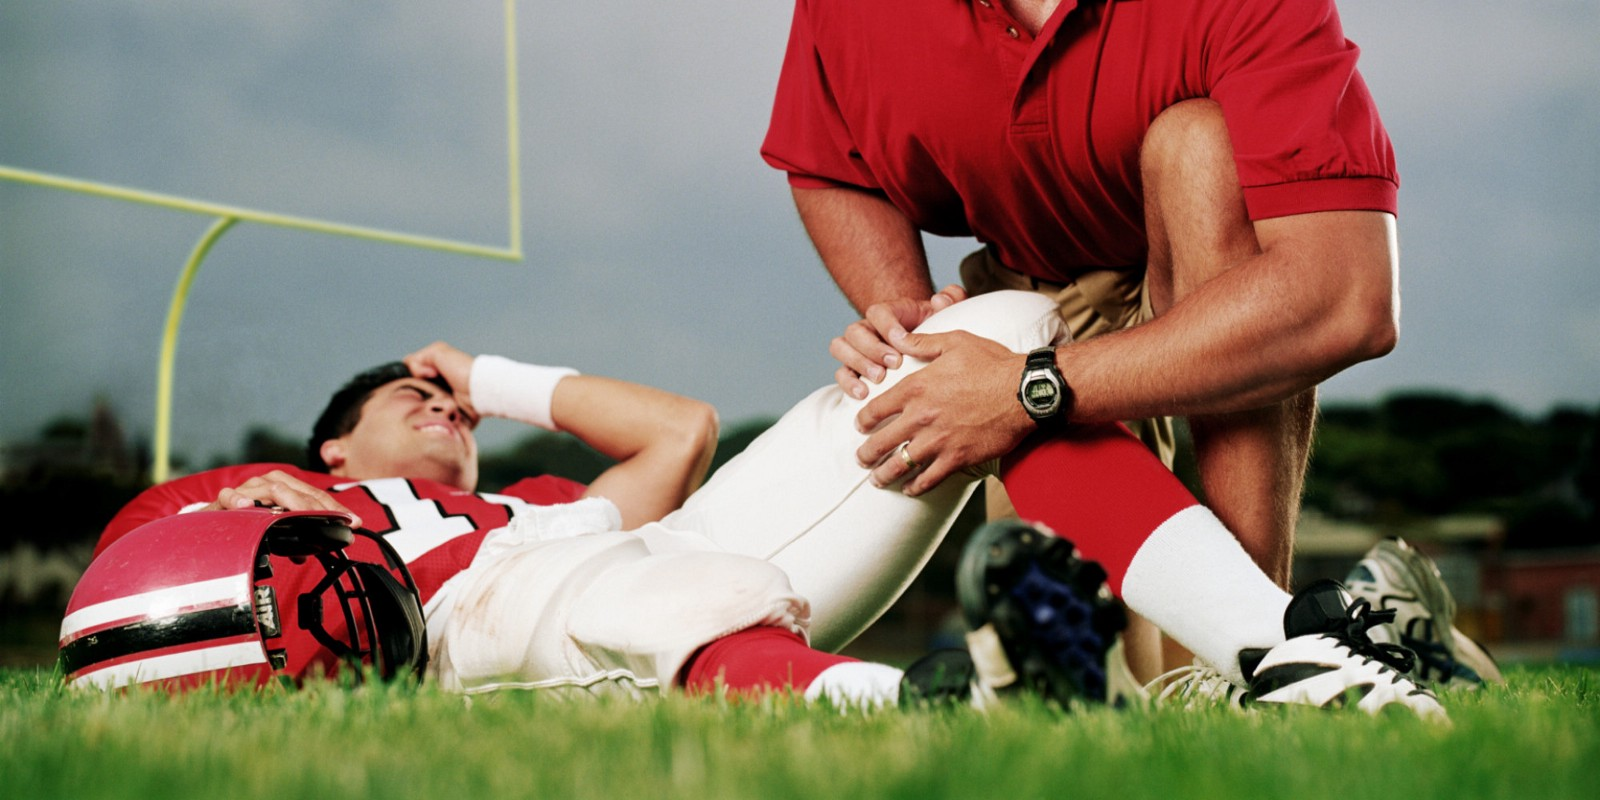 3 Questions To Ask While Selecting A Sports Medicine Physician